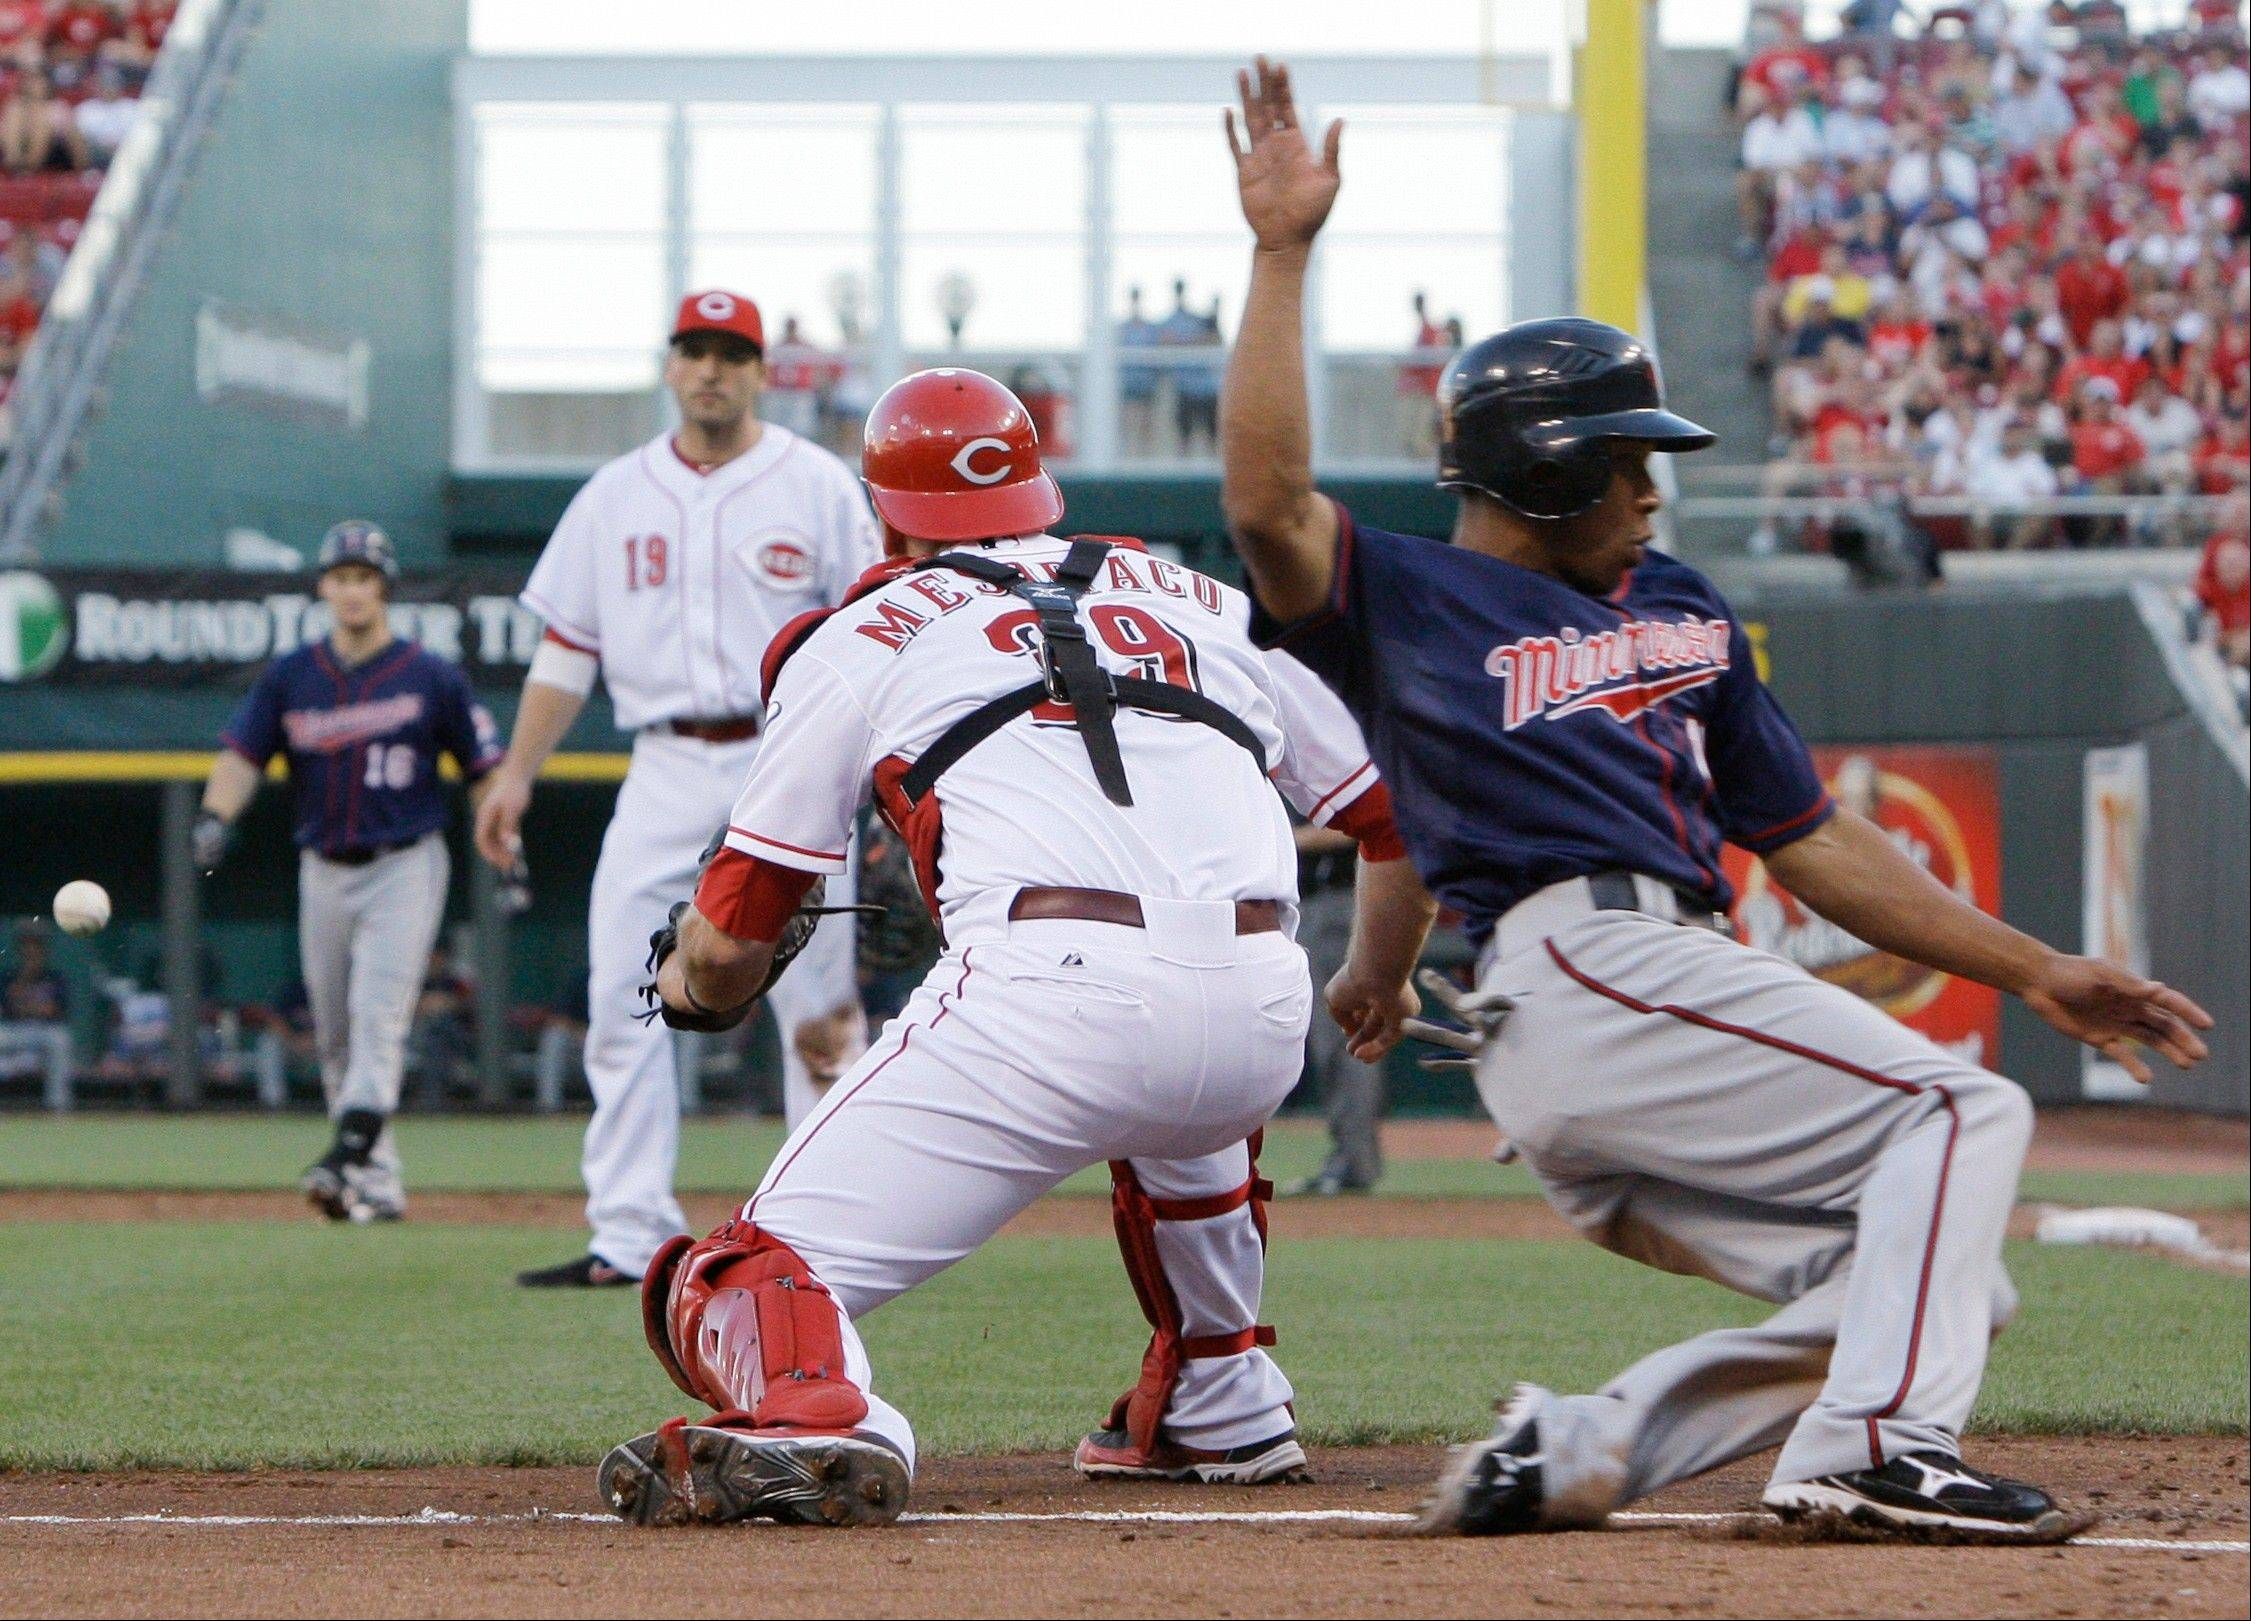 The Minnesota Twins' Ben Revere, right, scores as Cincinnati Reds catcher Devin Mesoraco waits for the throw Friday during the third inning in Cincinnati. Revere scored on a sacrifice fly by Josh Willingham.